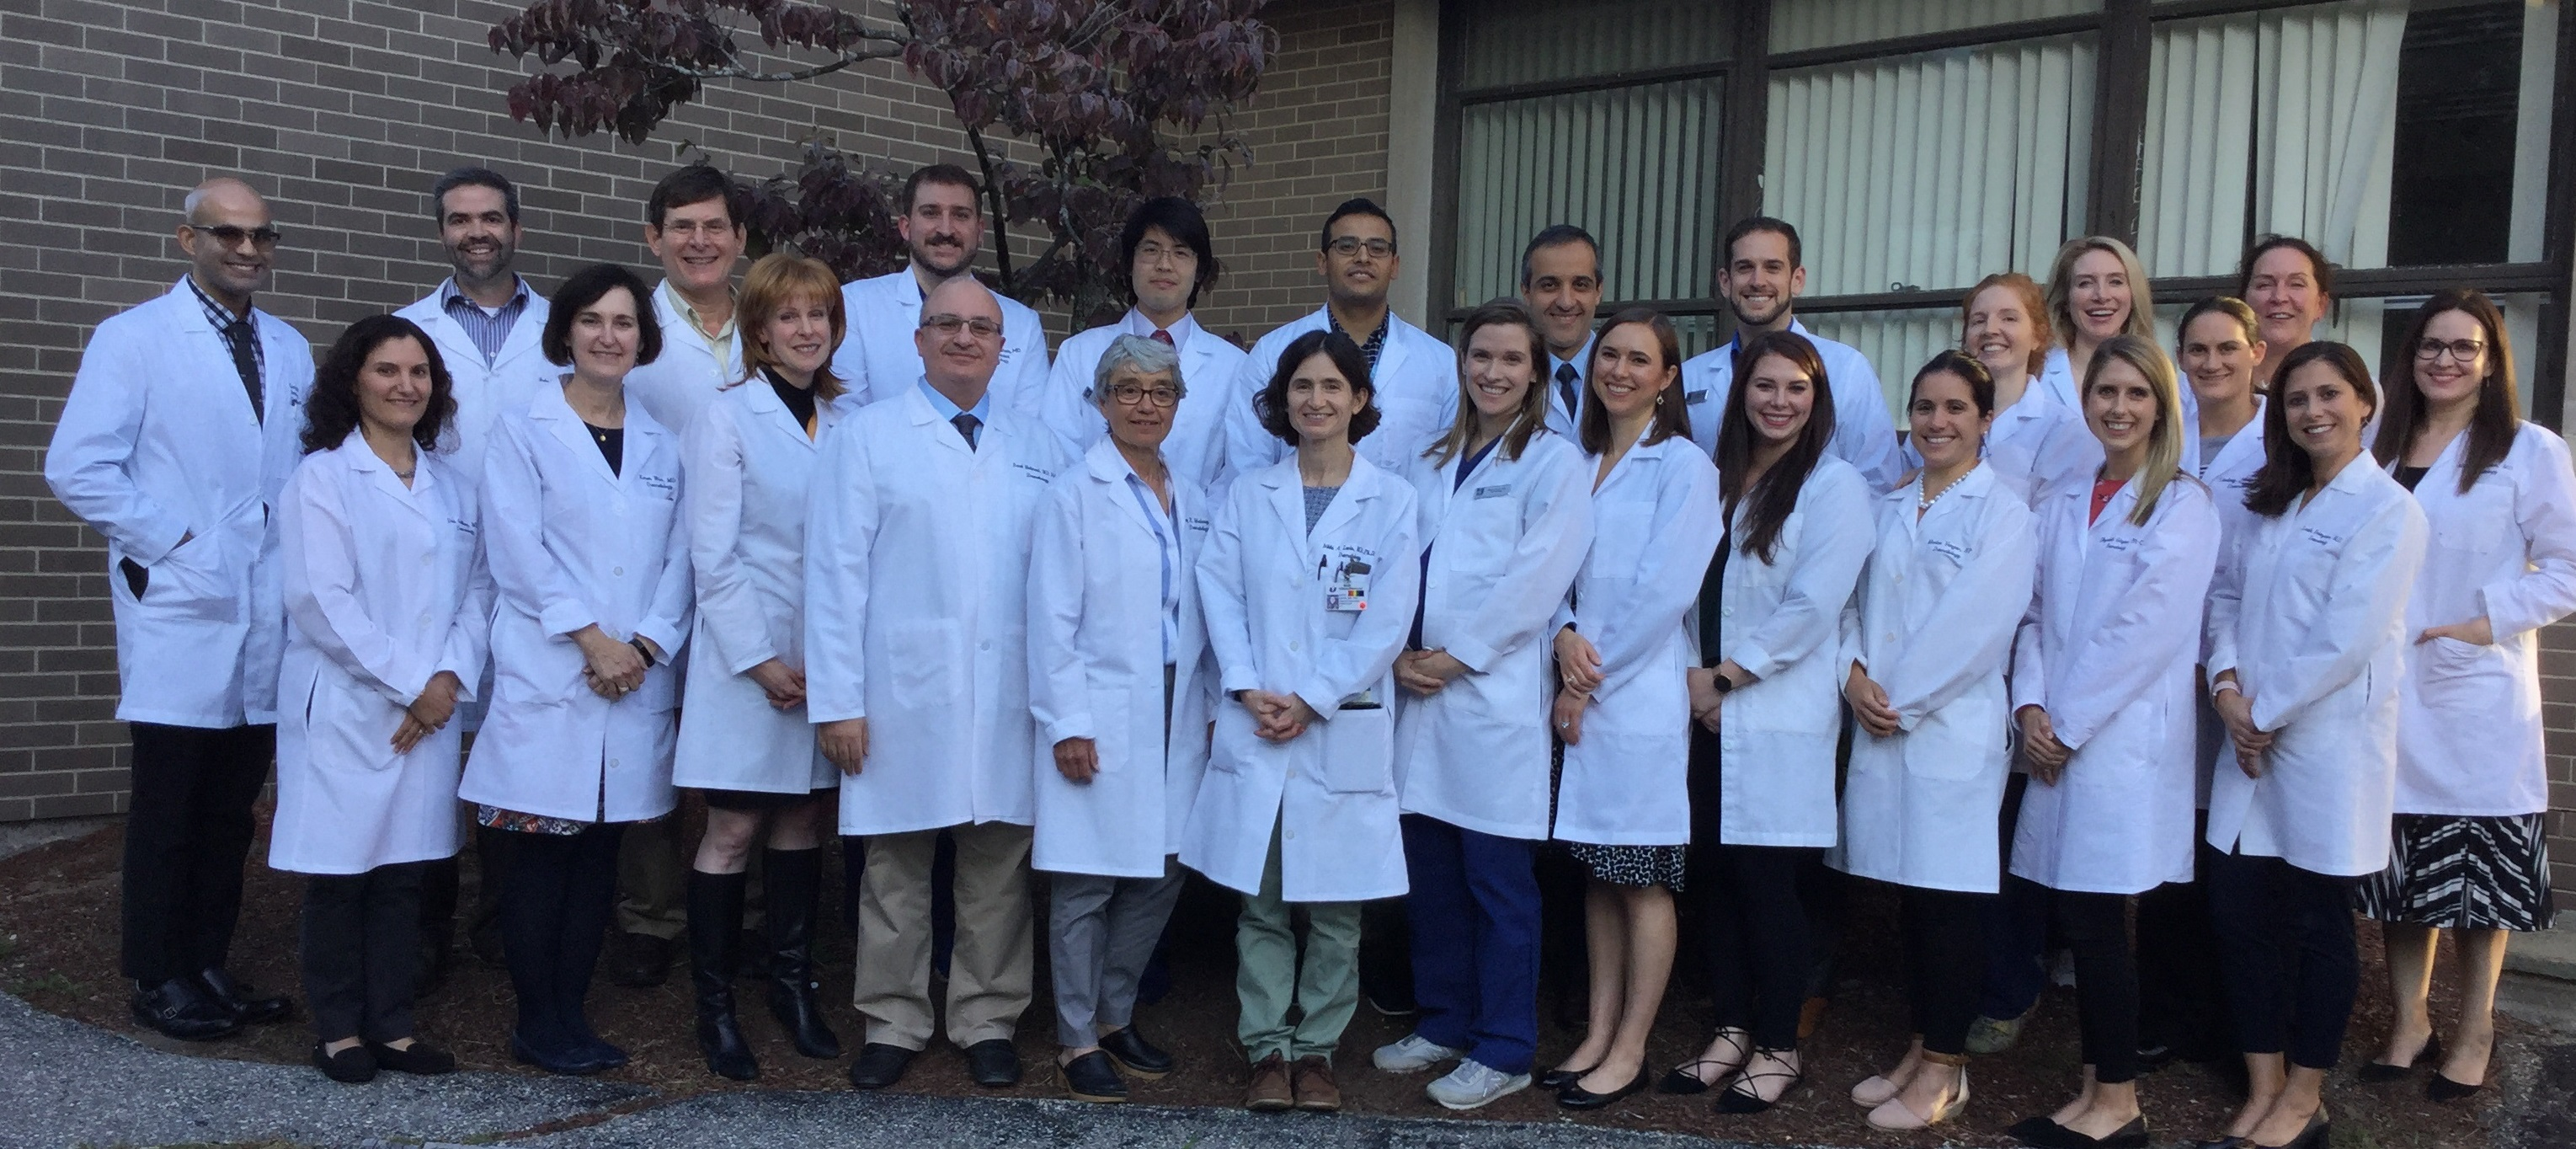 derm group photo